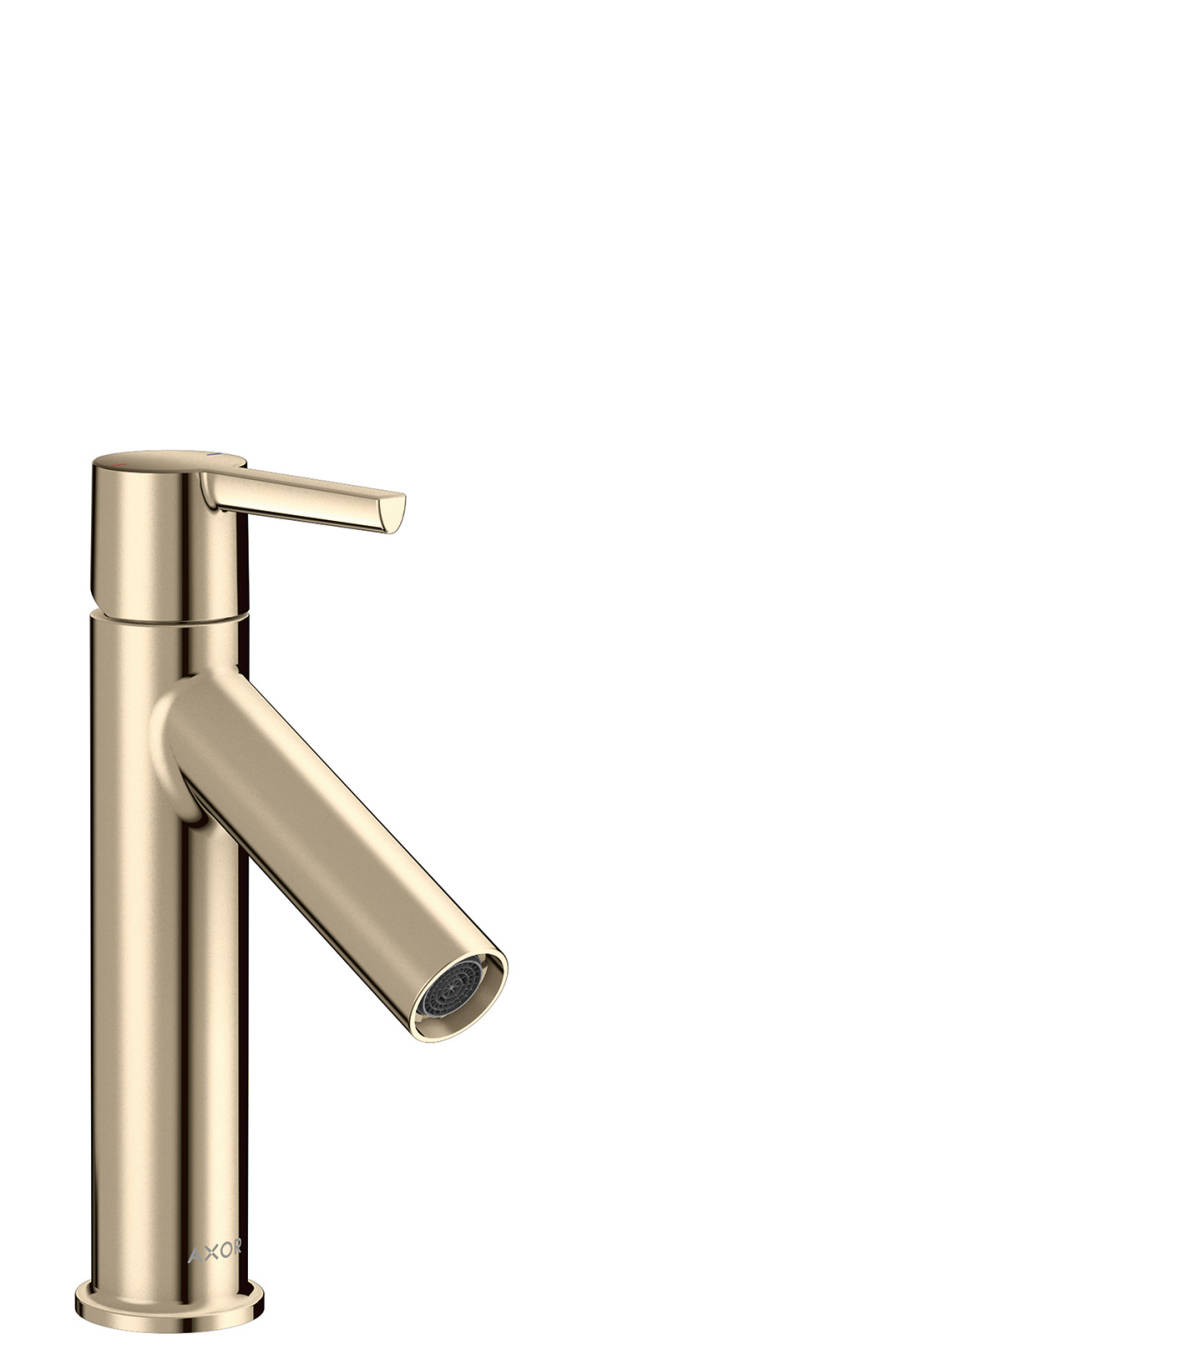 Single lever basin mixer 100 with lever handle and waste set, Polished Nickel, 10003830